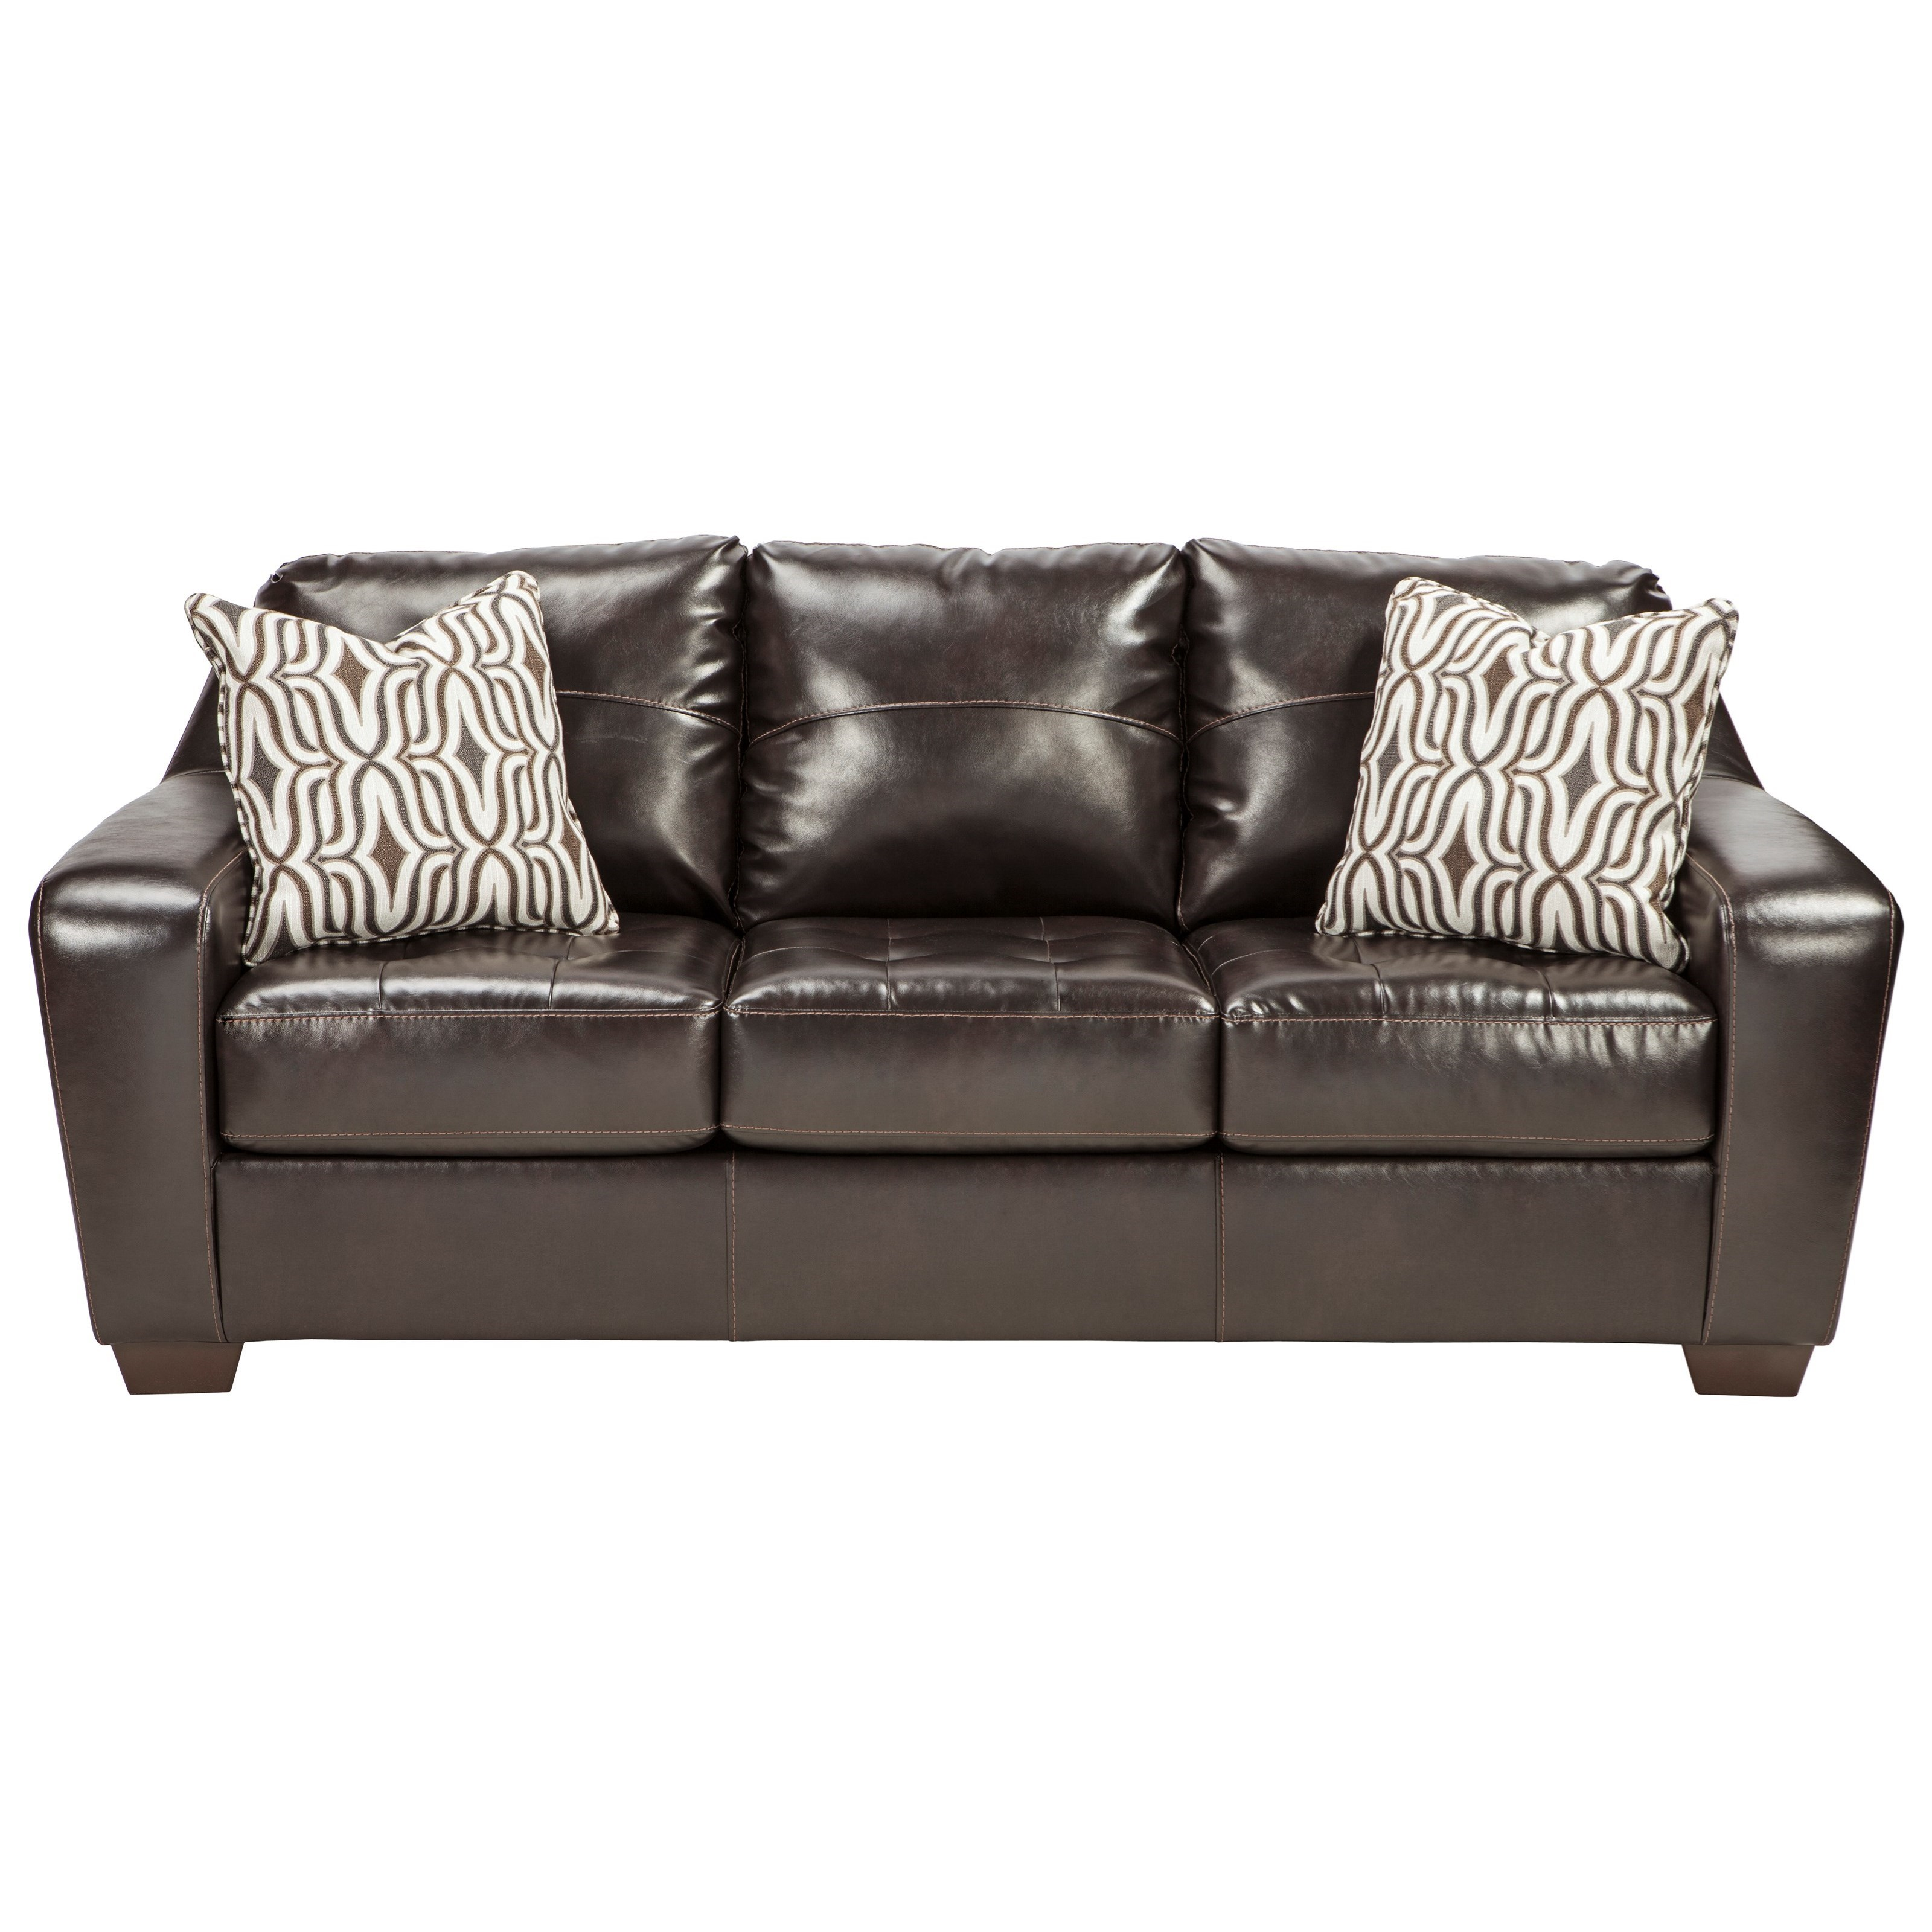 Contemporary Faux Leather Sofa with Tufted Seat Cushions by